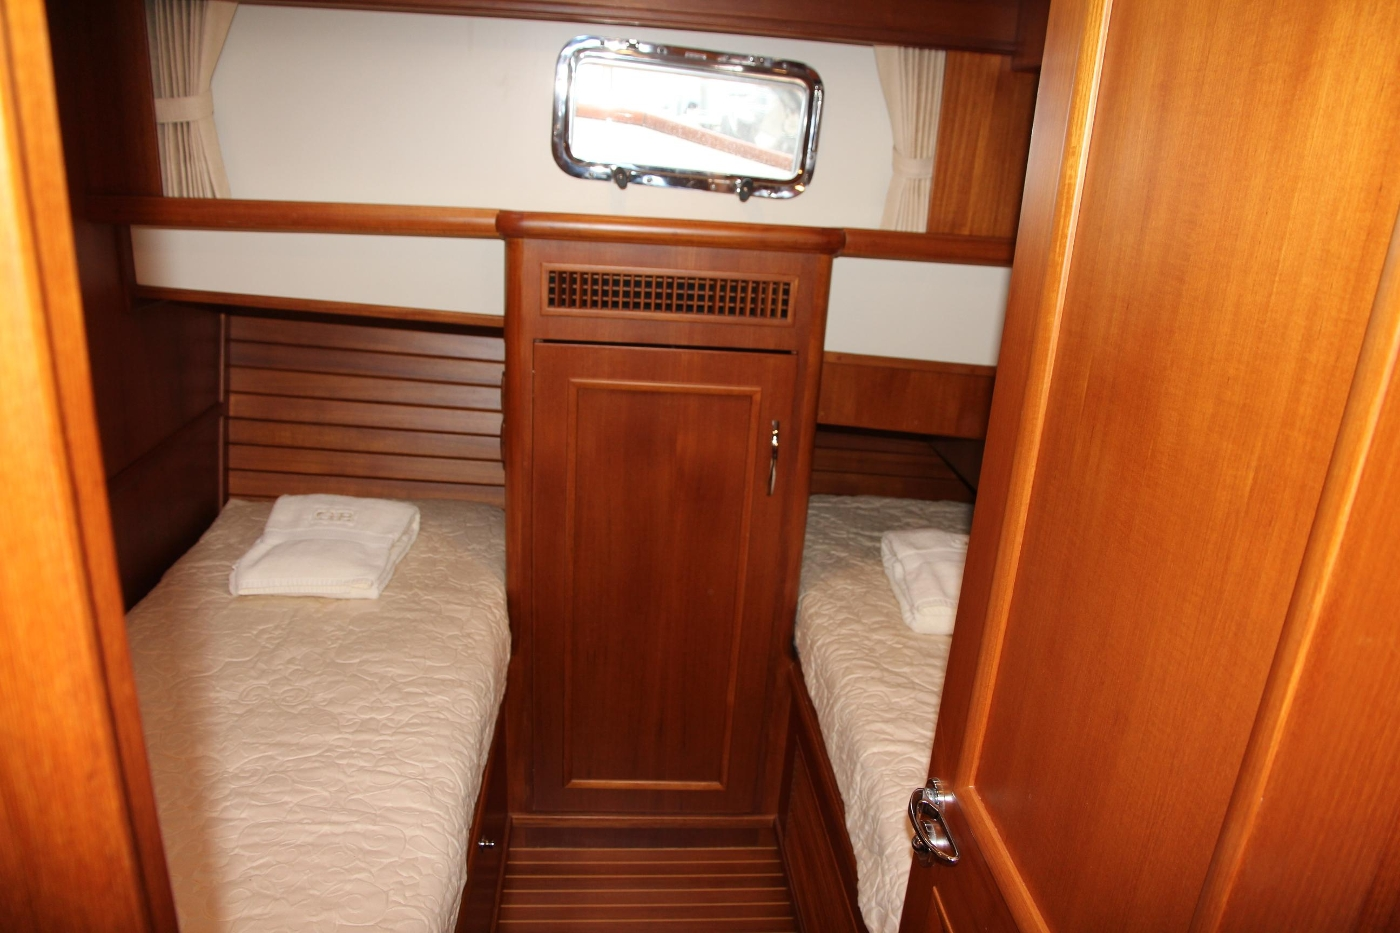 2009 Grand Banks 47 Europa, Guest Cabin